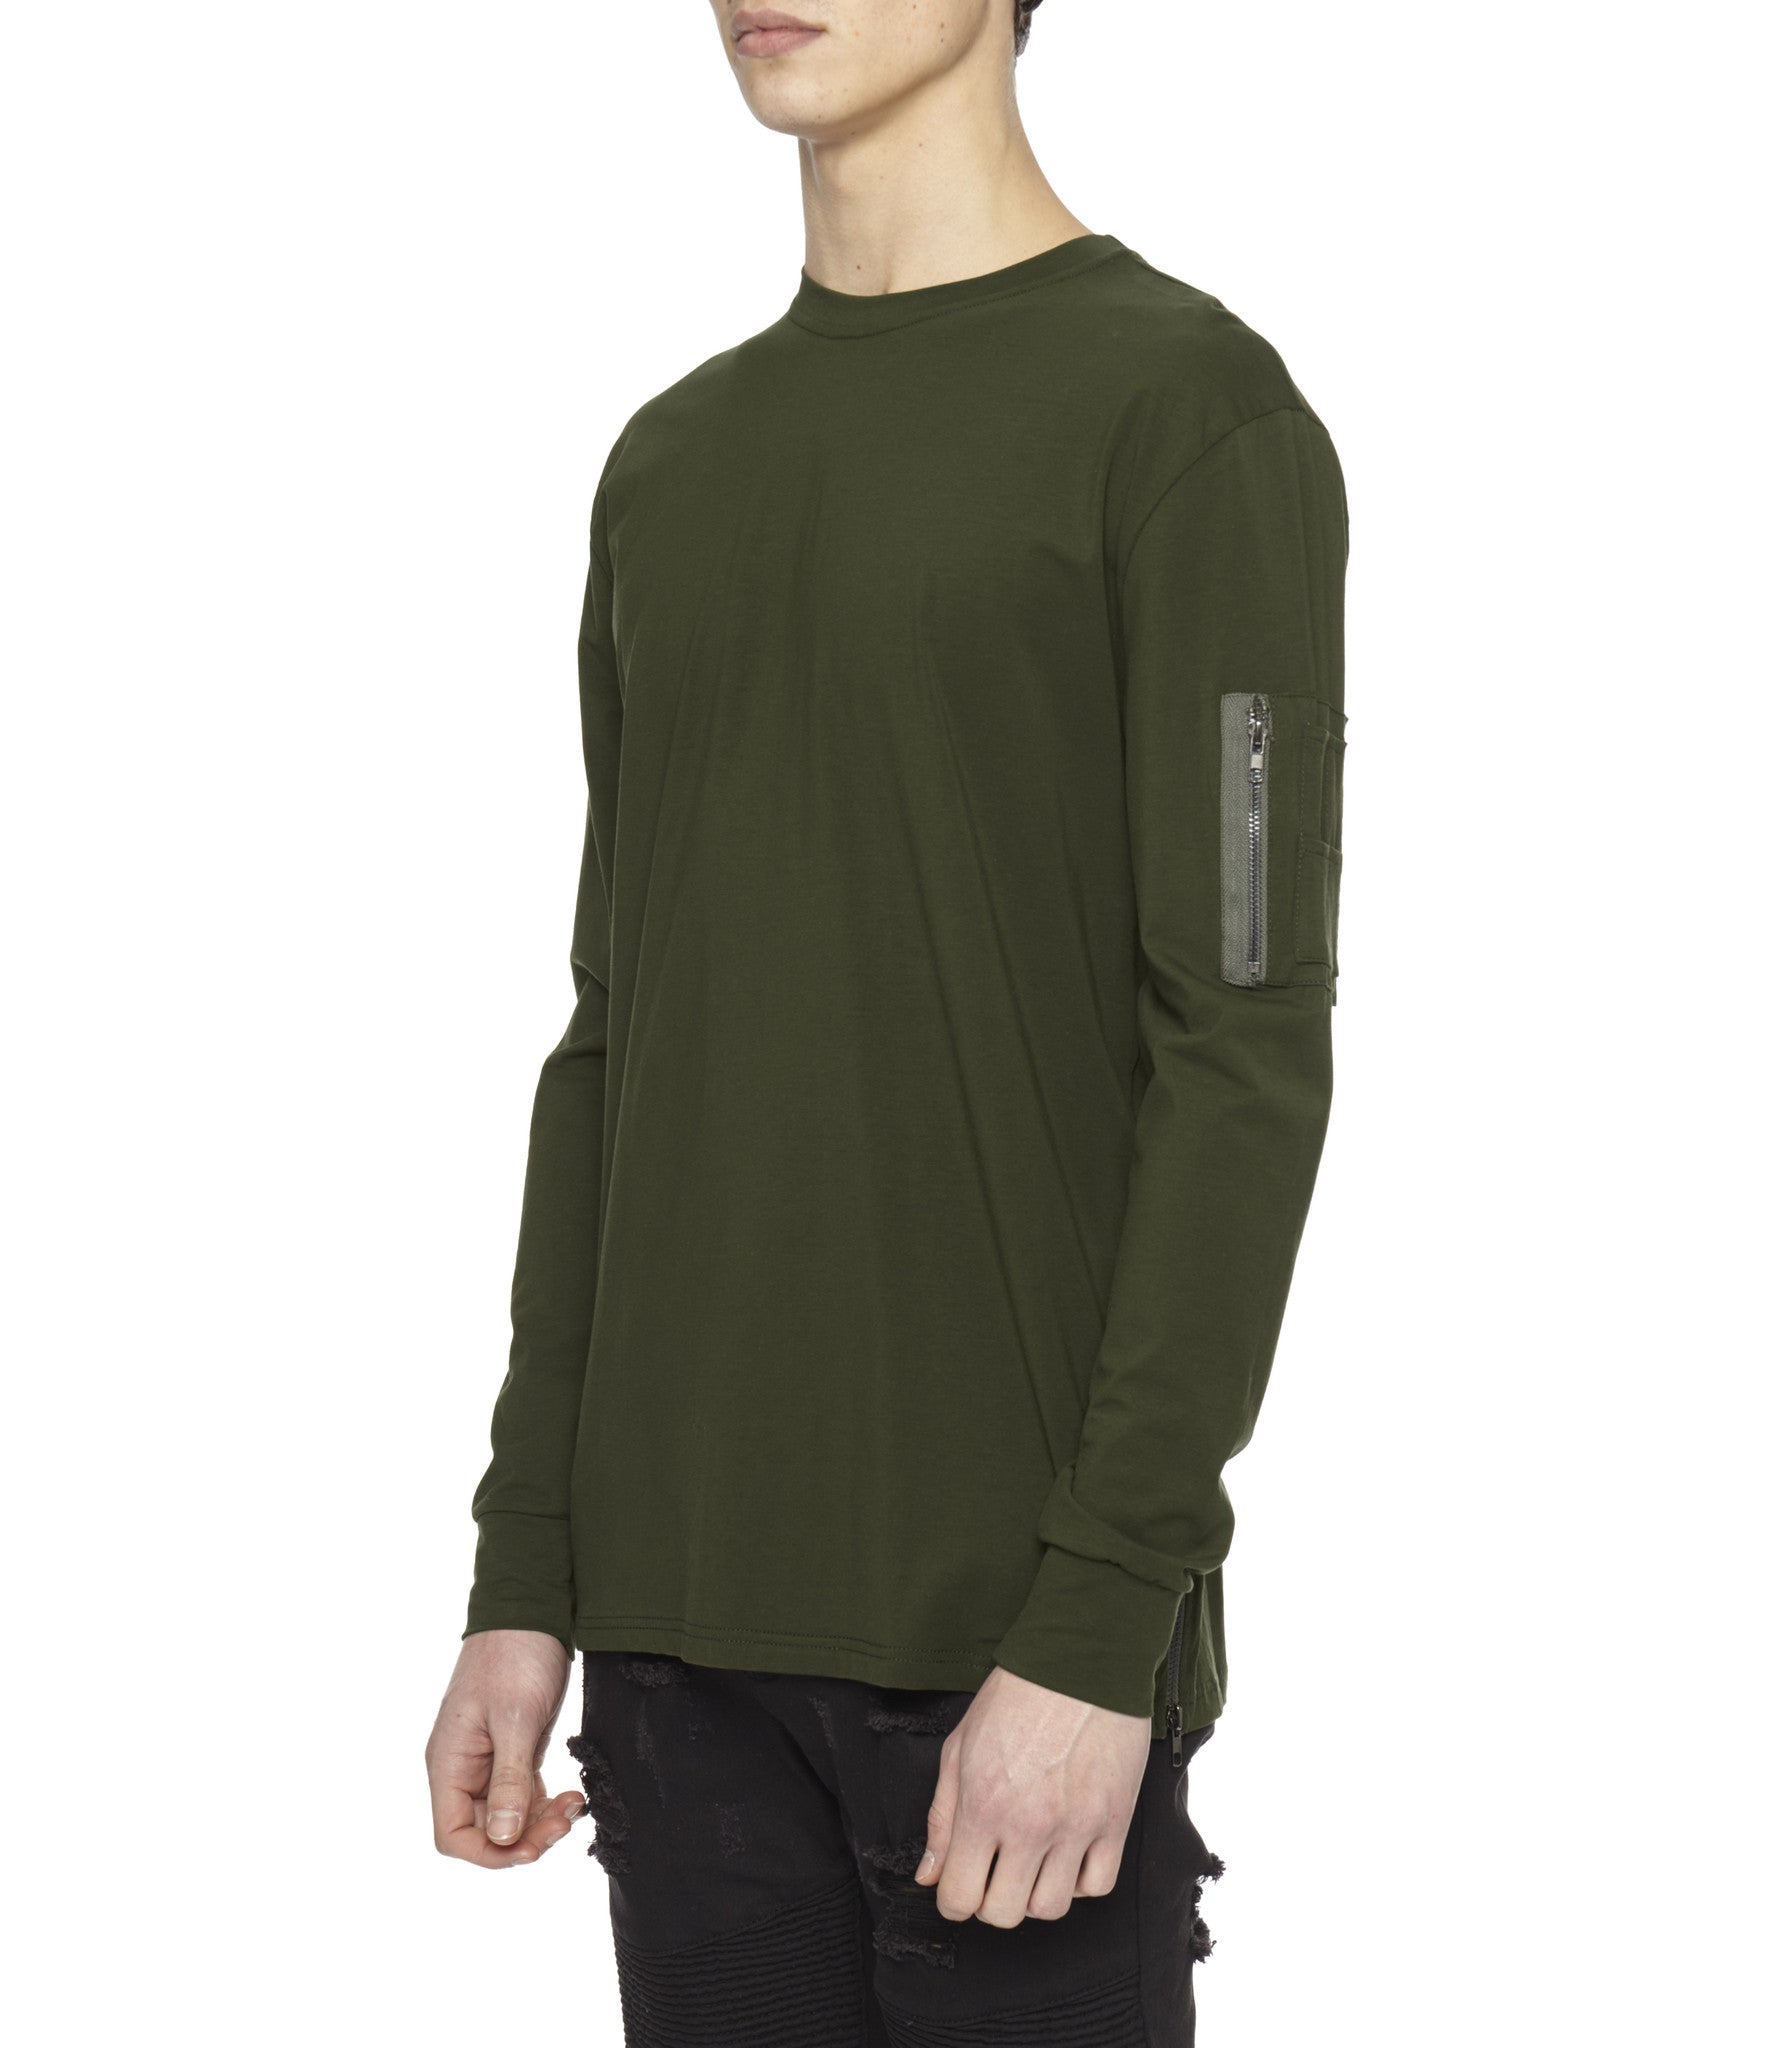 LS303 Utility Long-Sleeve Tee - Olive Green - underated london - underatedco - 5